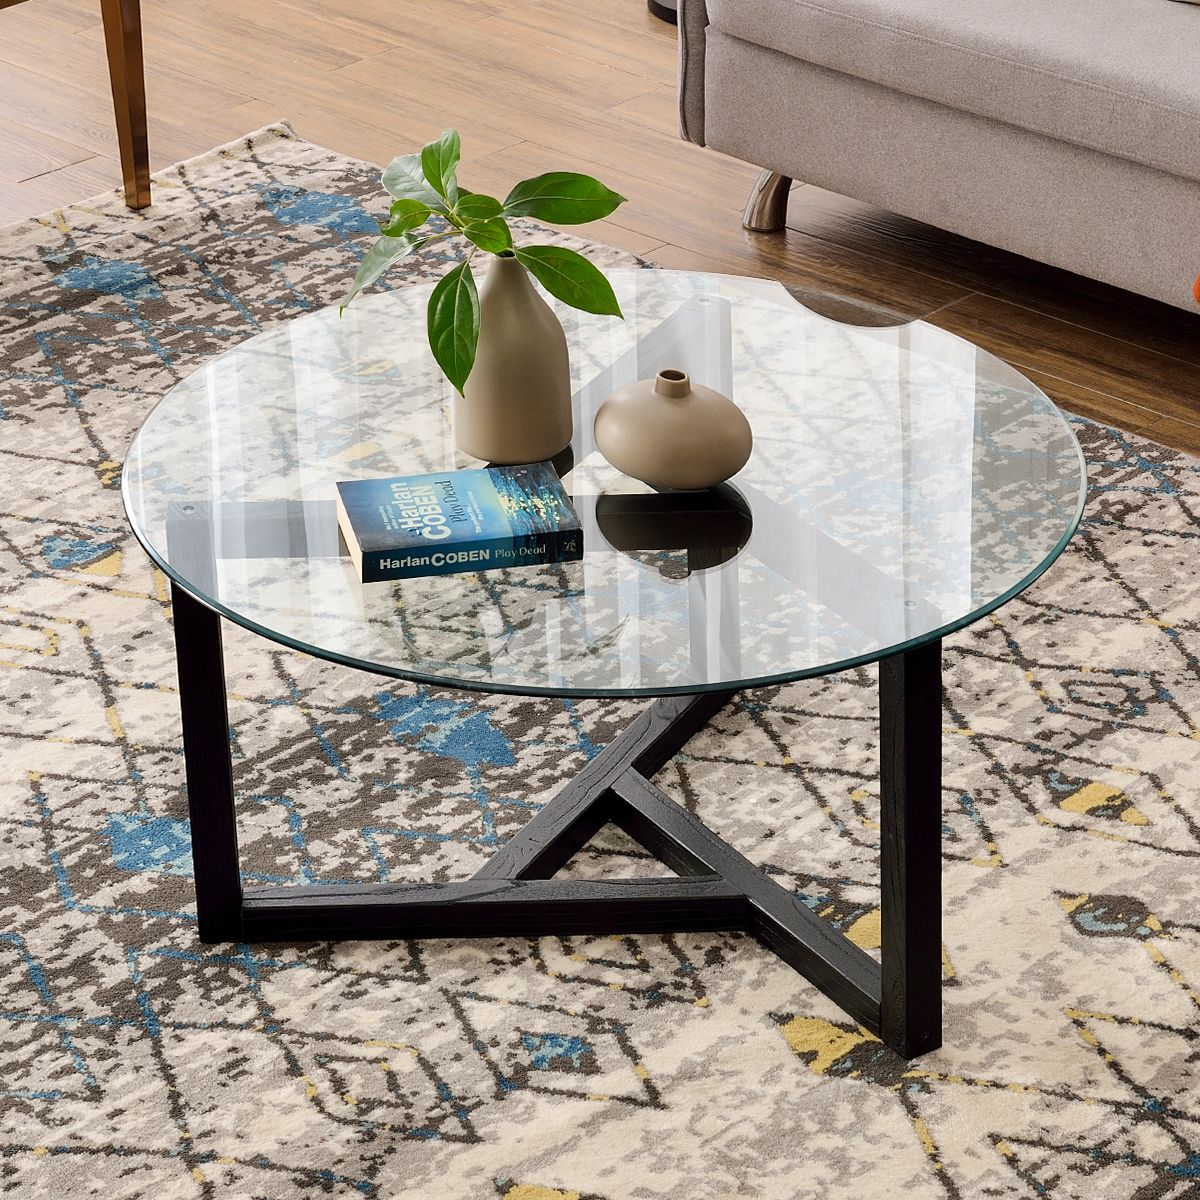 Pin By Om Suthar On Center Table With Glass Top In 2021 Glass Table Living Room Modern Glass Coffee Table Round Center Table [ 1200 x 1200 Pixel ]